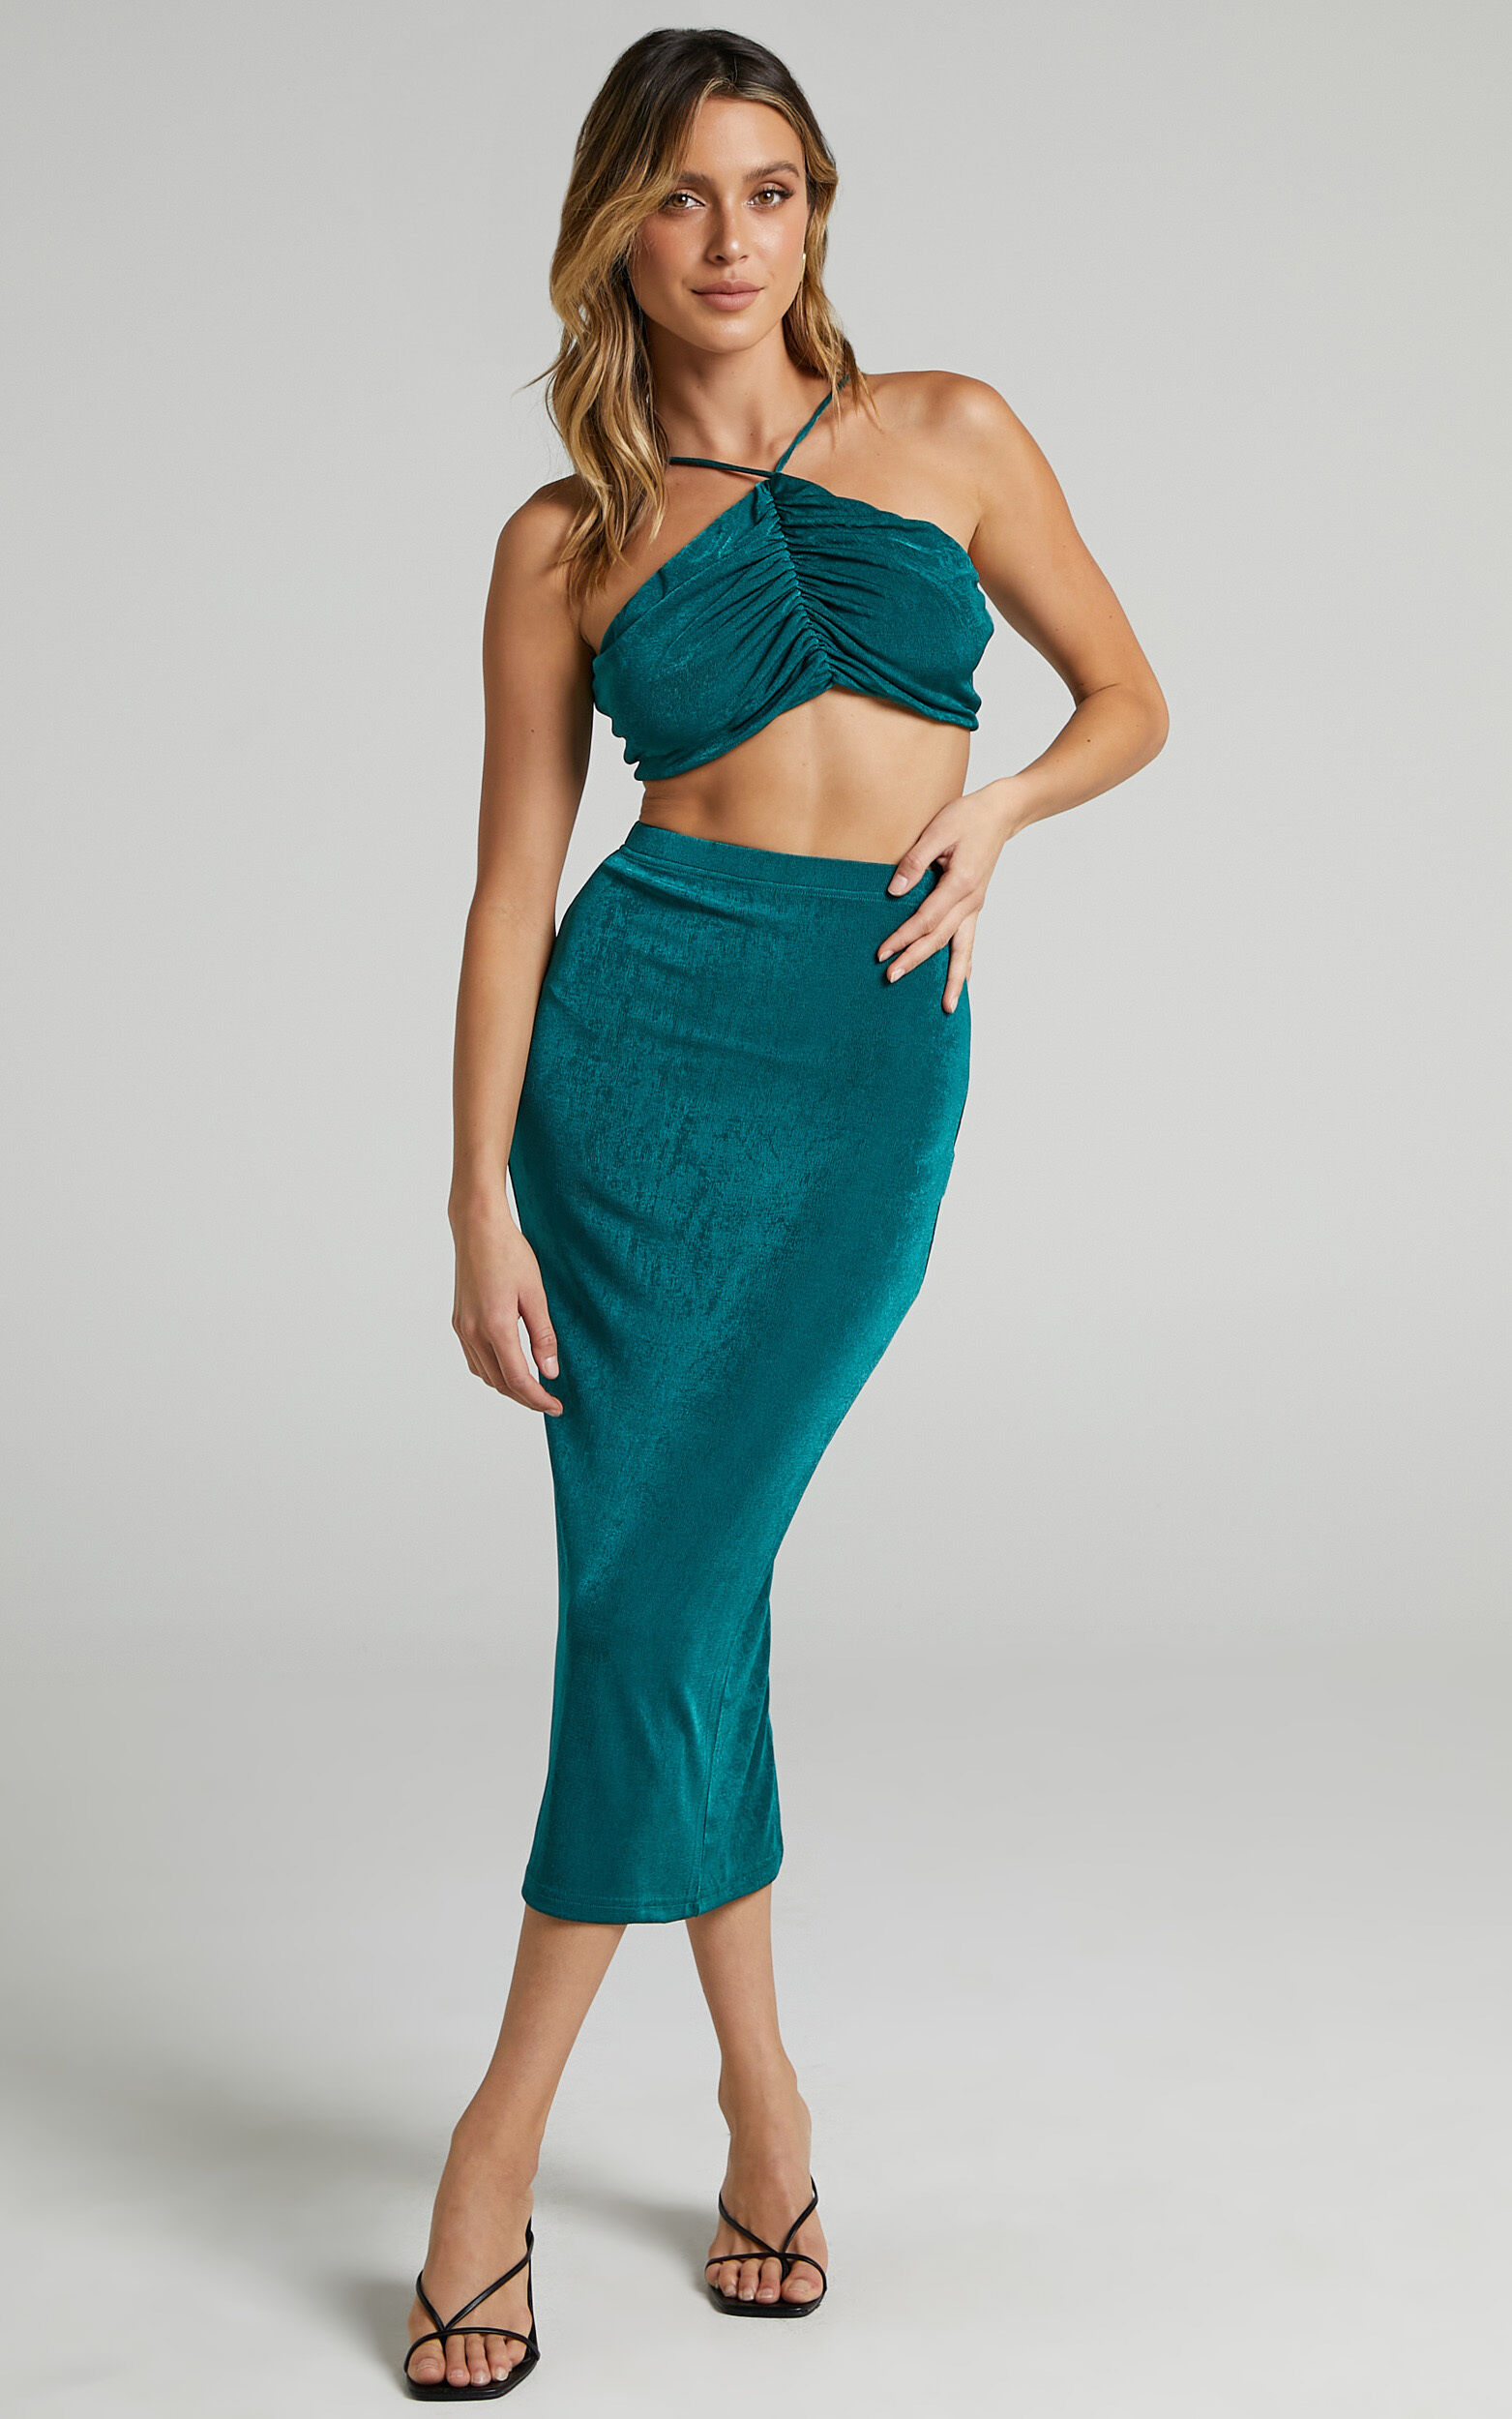 She.Is.Us - On Demand Skirt in Emerald - L, GRN1, super-hi-res image number null